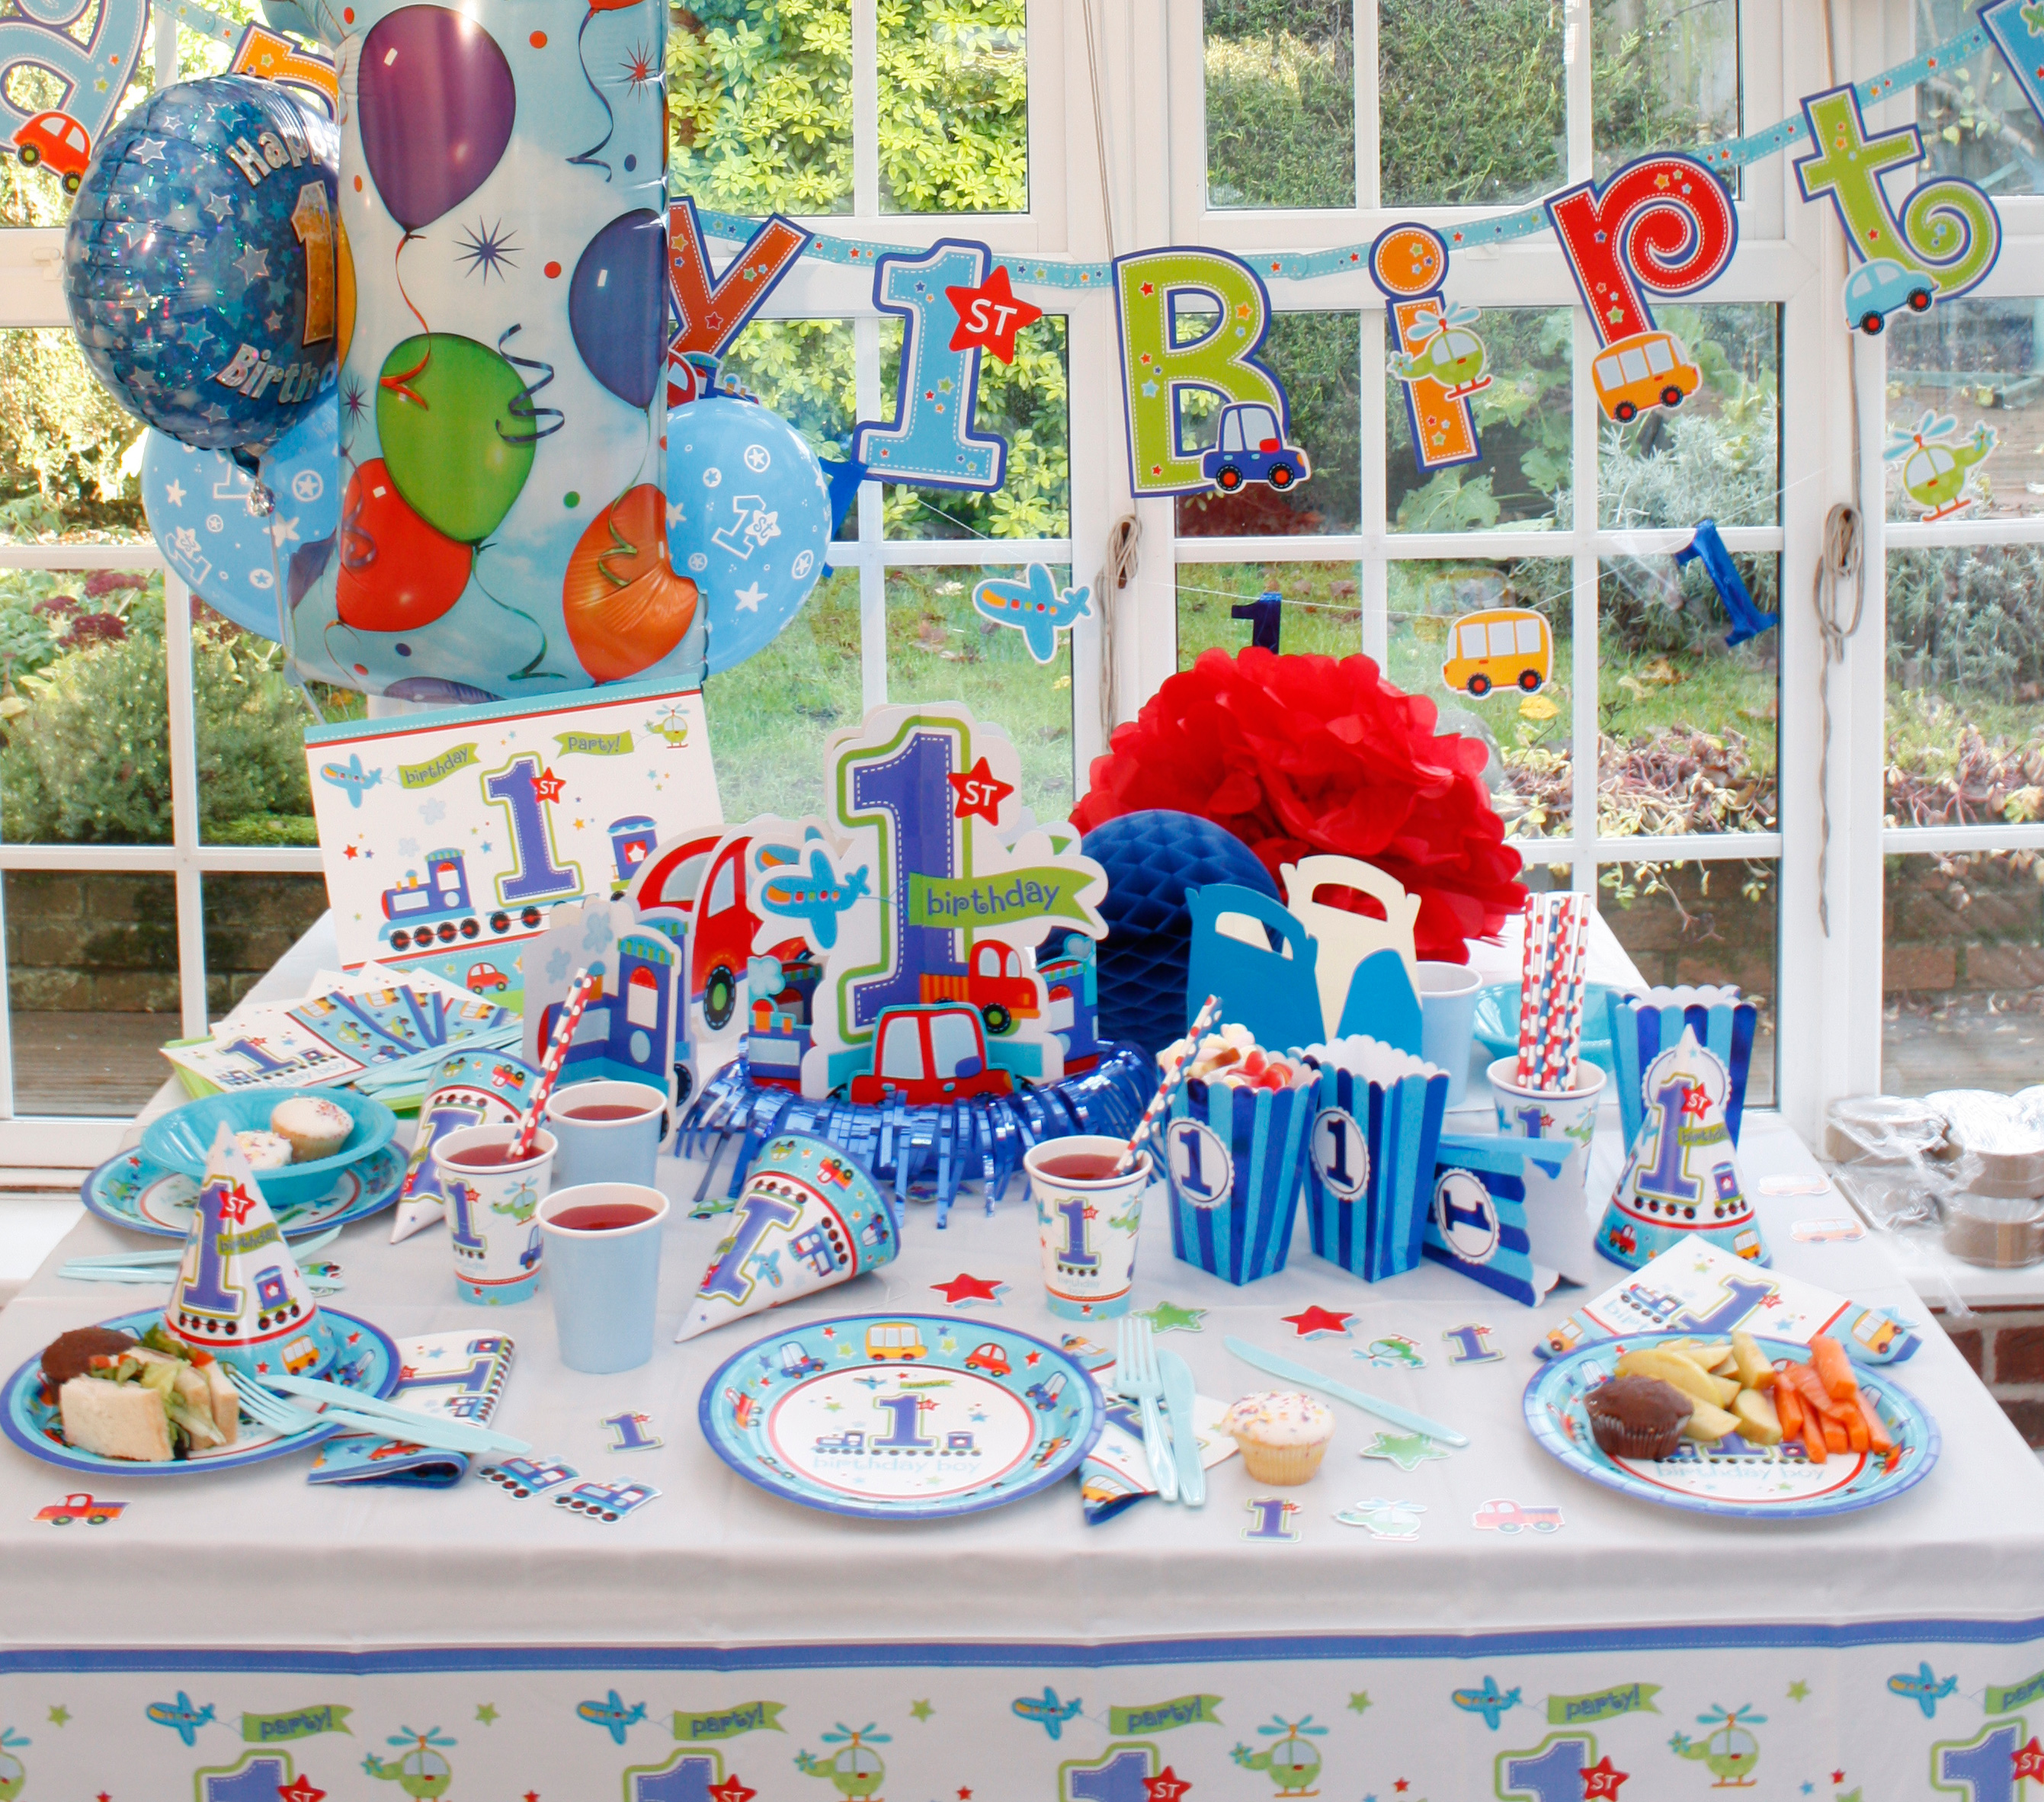 bday decoration theme ; all-aboard